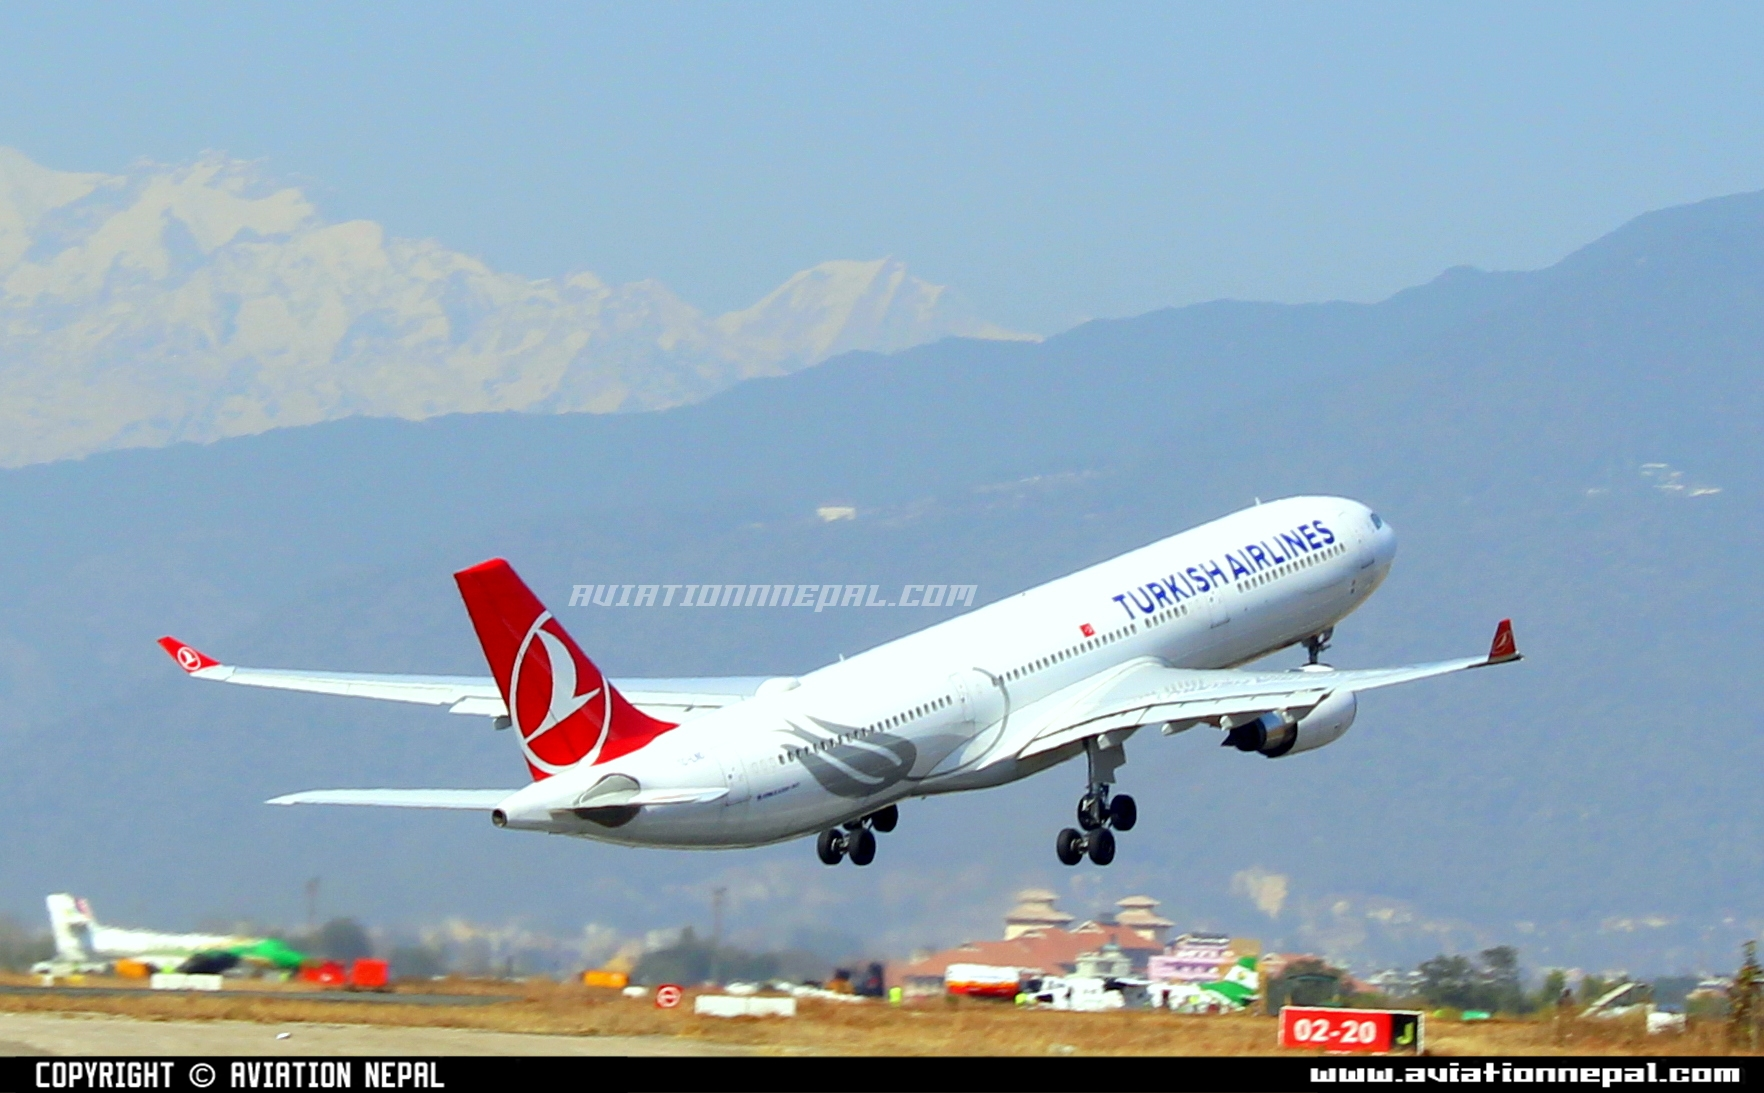 turkish airlines industry analysis A competitive analysis of airline industry: a case study on biman bangladesh airlines doi: 109790/487x-17422333 wwwiosrjournalsorg 24 | page.